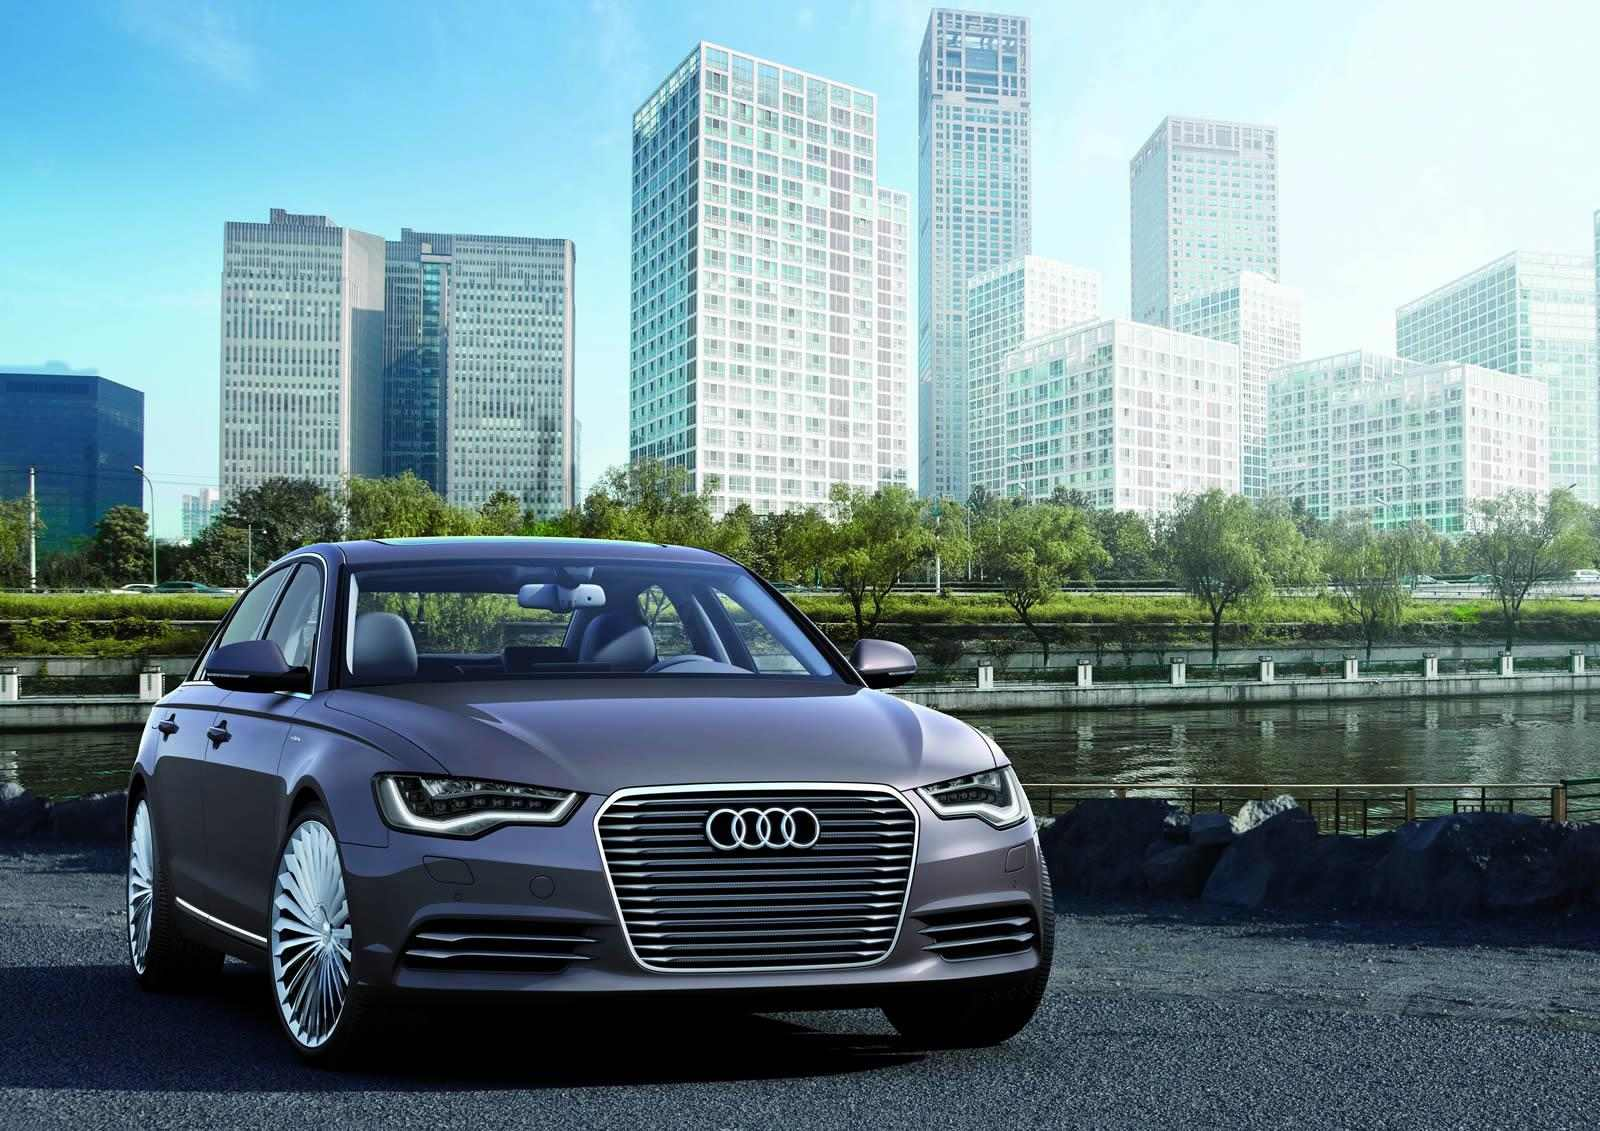 2012-audi-a6-l-e-tron-concept-unveiled-photo-gallery_12